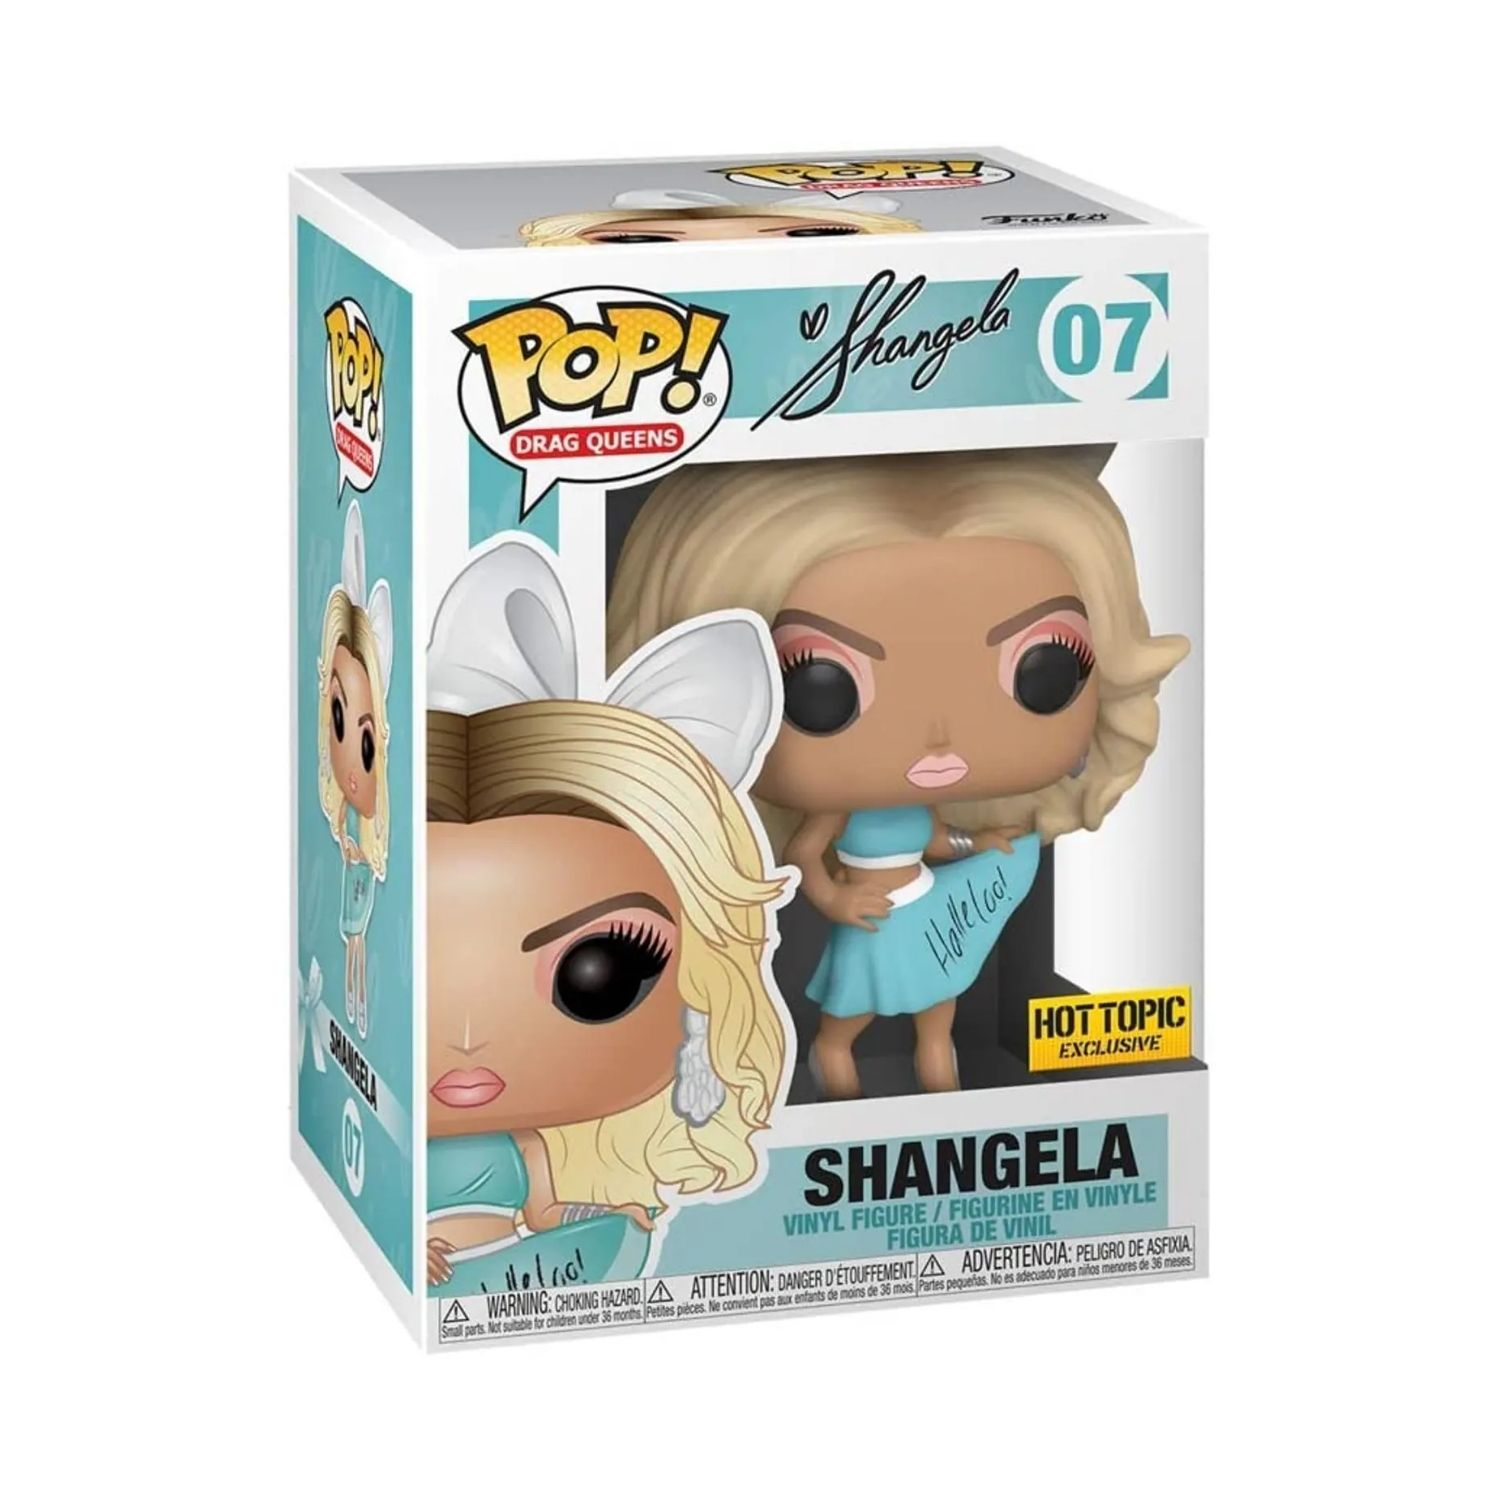 Funko Pop Drag Queens Shangela Exclusiva Hot Topic #07  - Game Land Brinquedos